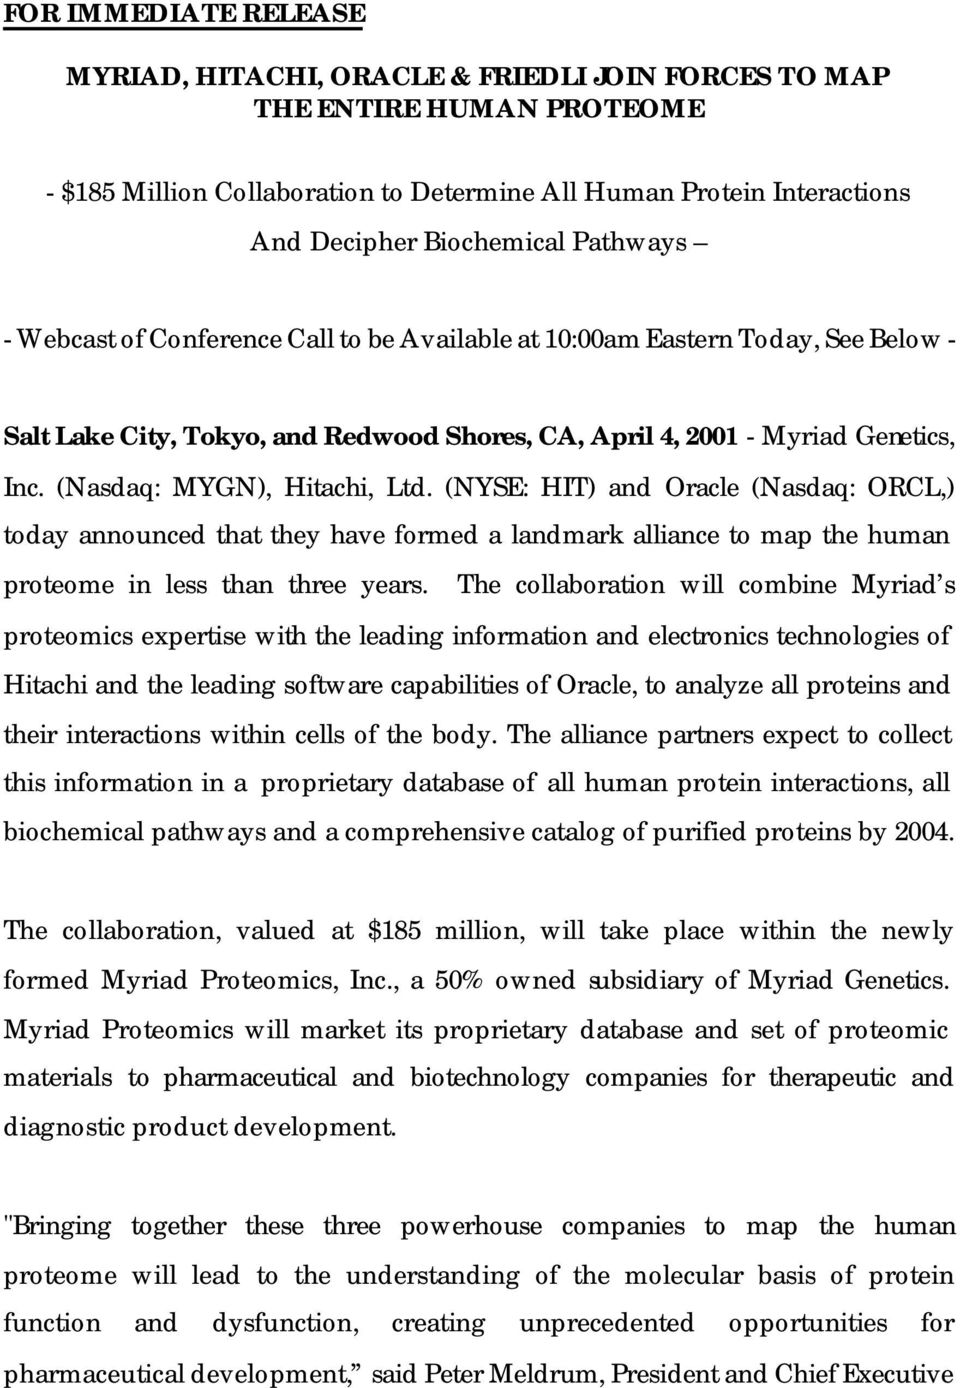 (Nasdaq: MYGN), Hitachi, Ltd. (NYSE: HIT) and Oracle (Nasdaq: ORCL,) today announced that they have formed a landmark alliance to map the human proteome in less than three years.